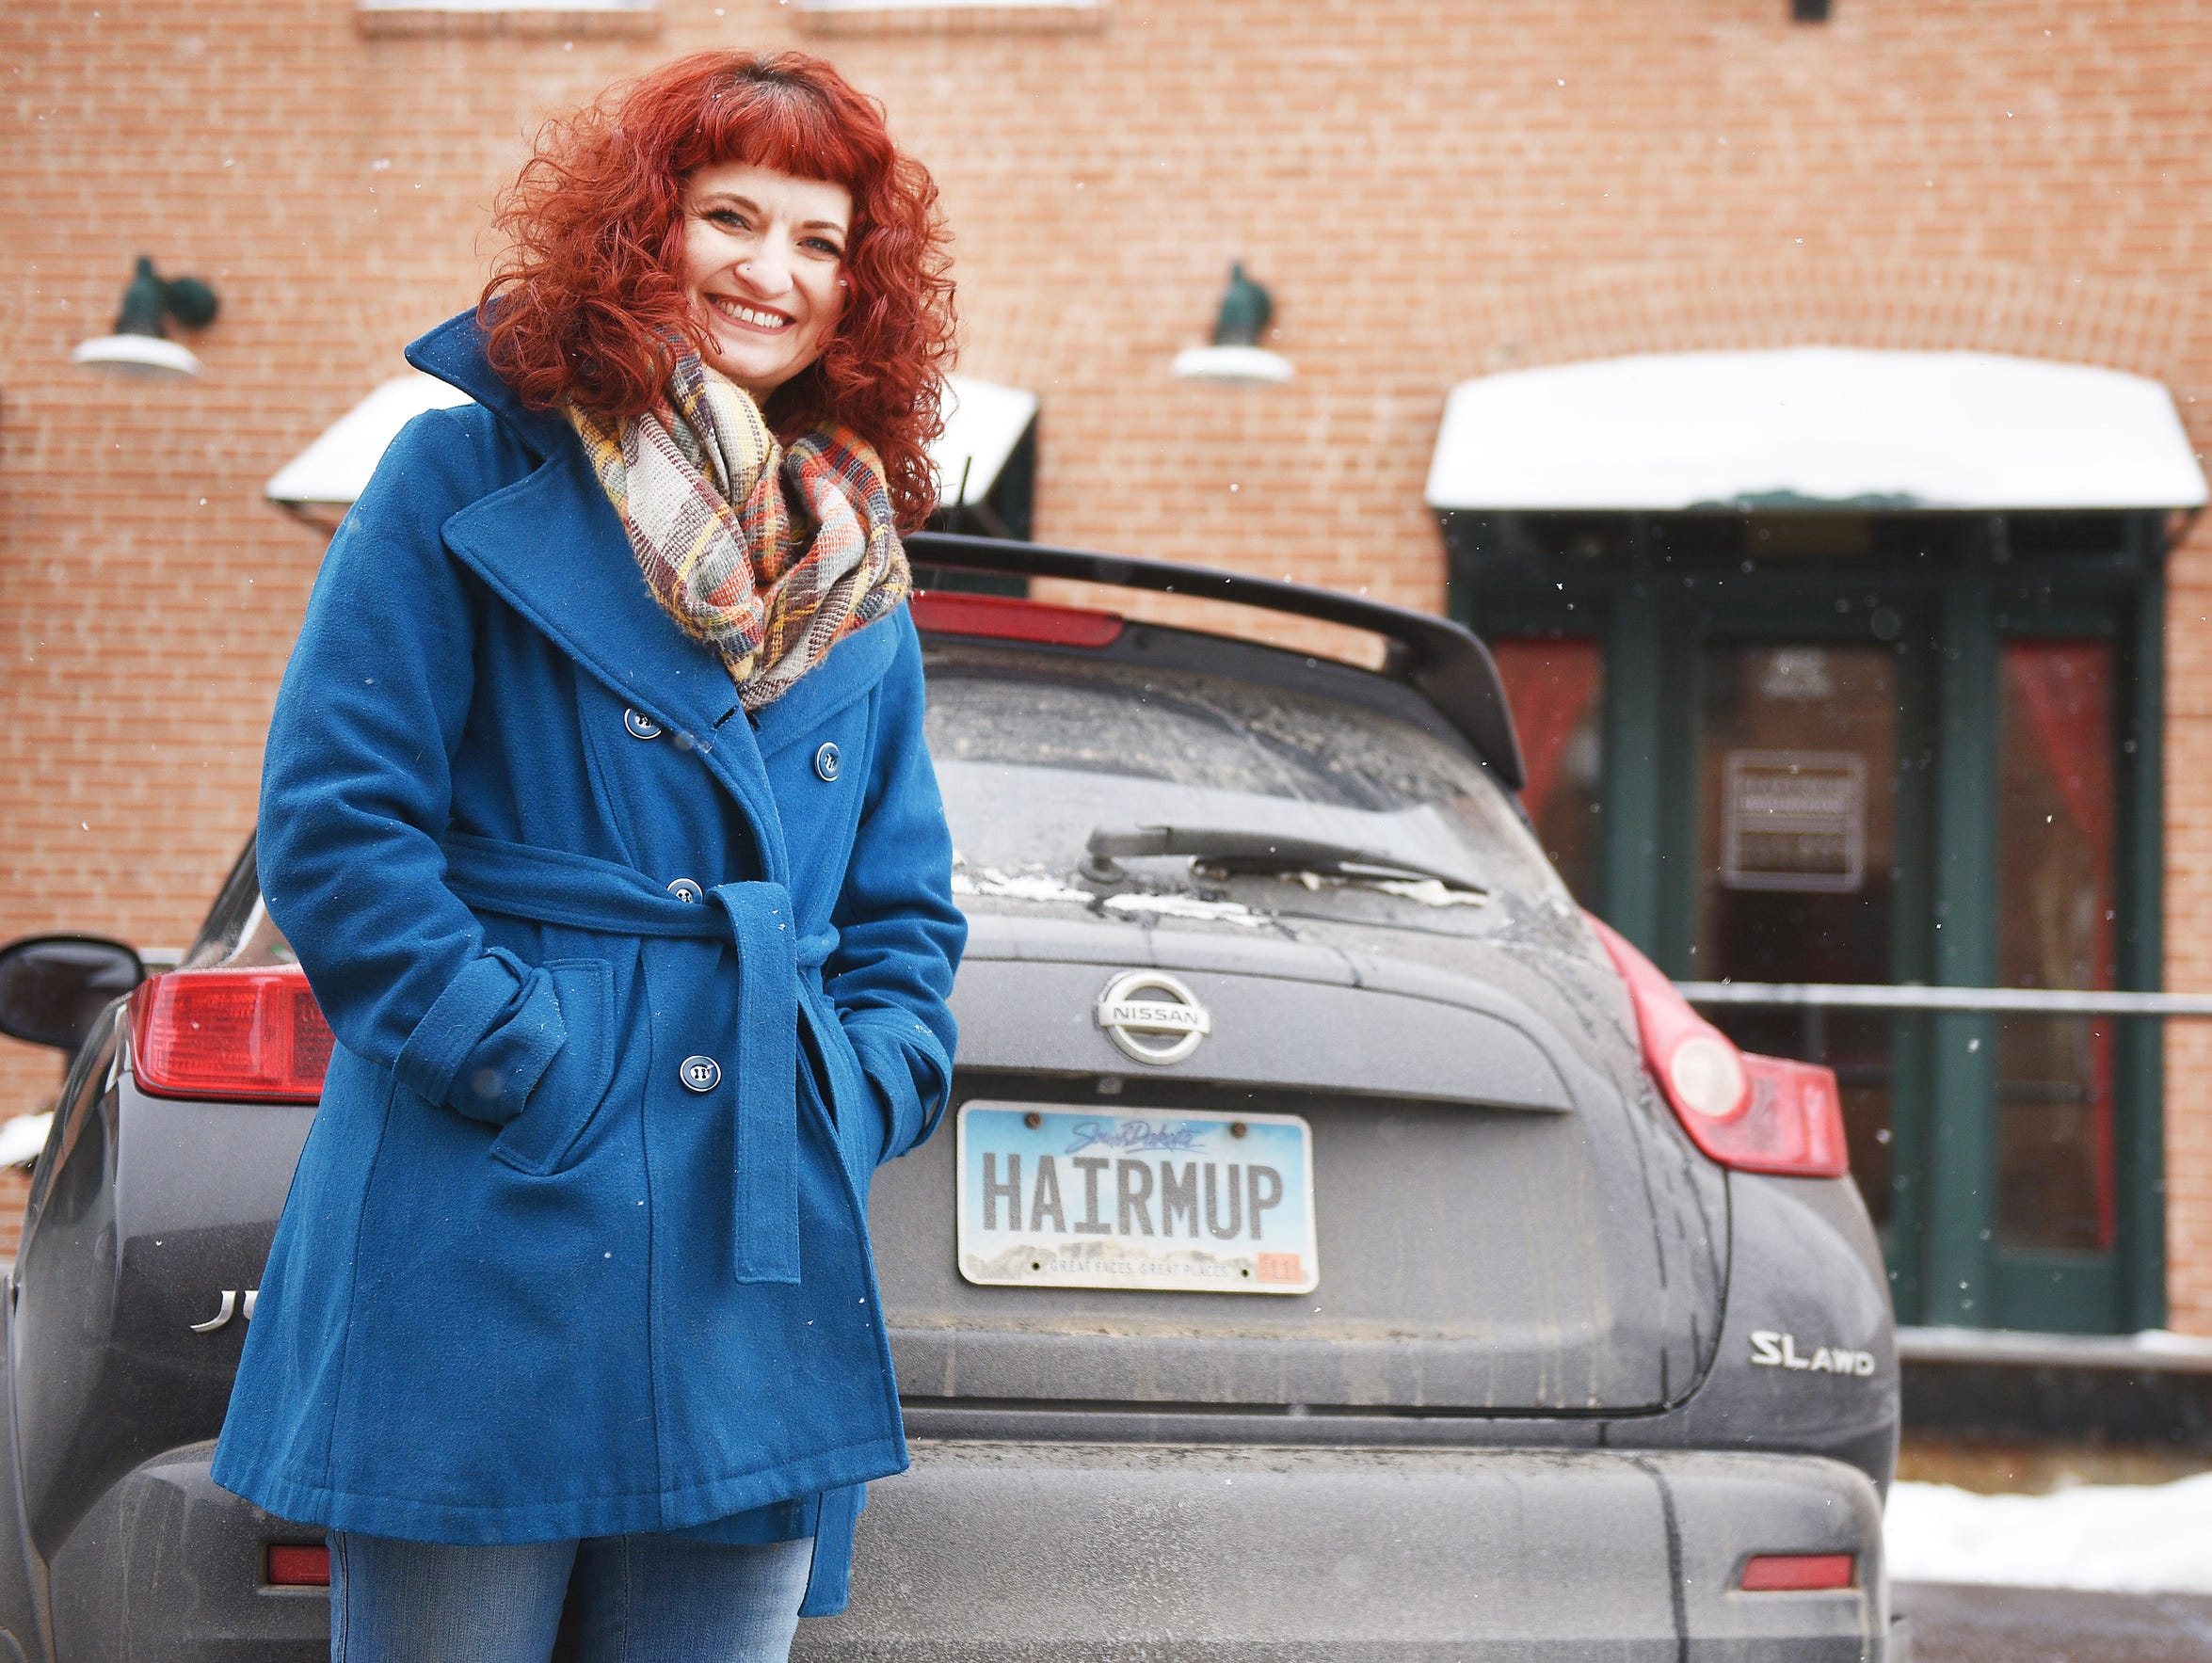 Angelique Verver shows off her license plate that reads